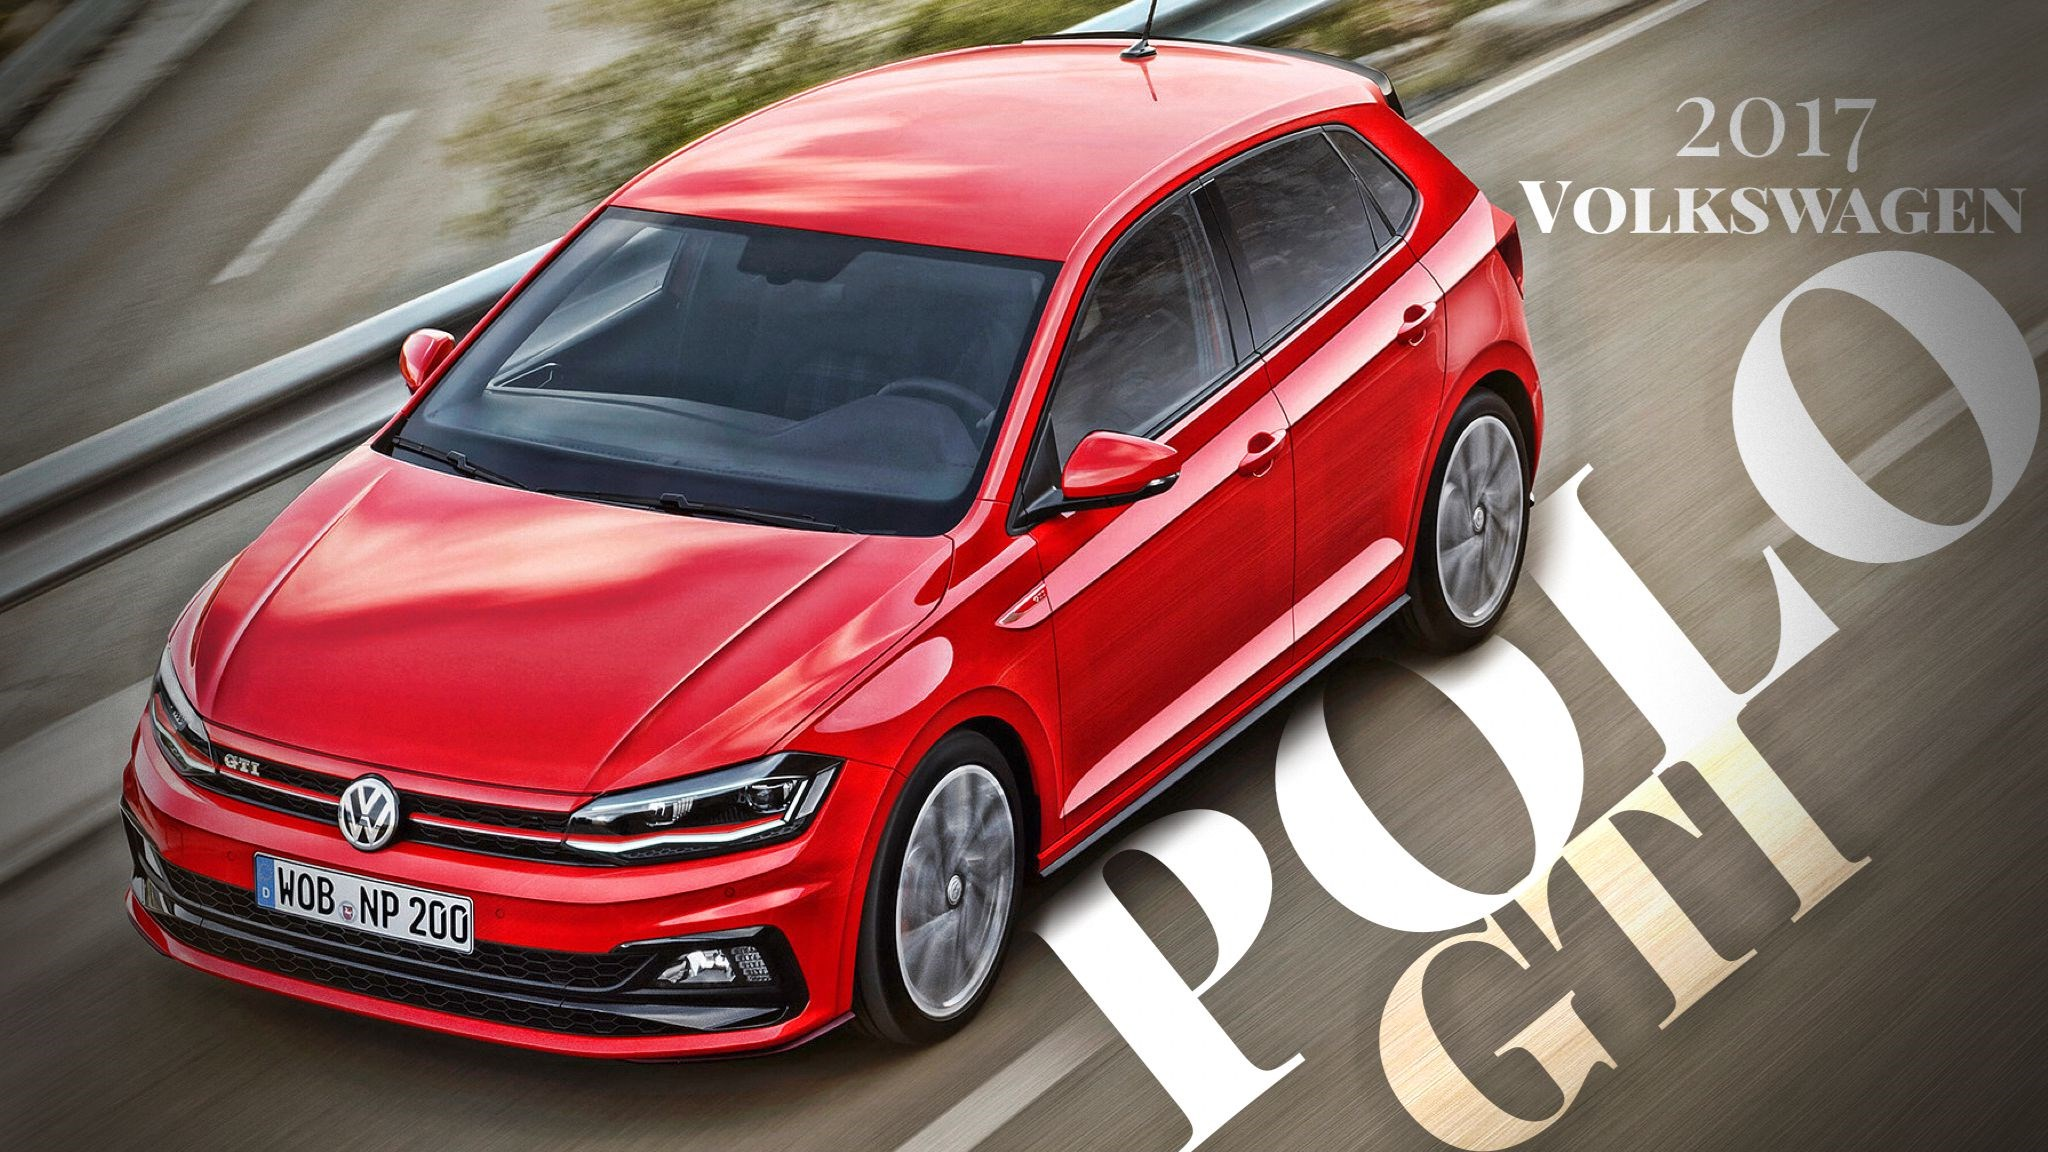 2017 Volkswagen Polo Revealed, Edges Closer To Golf